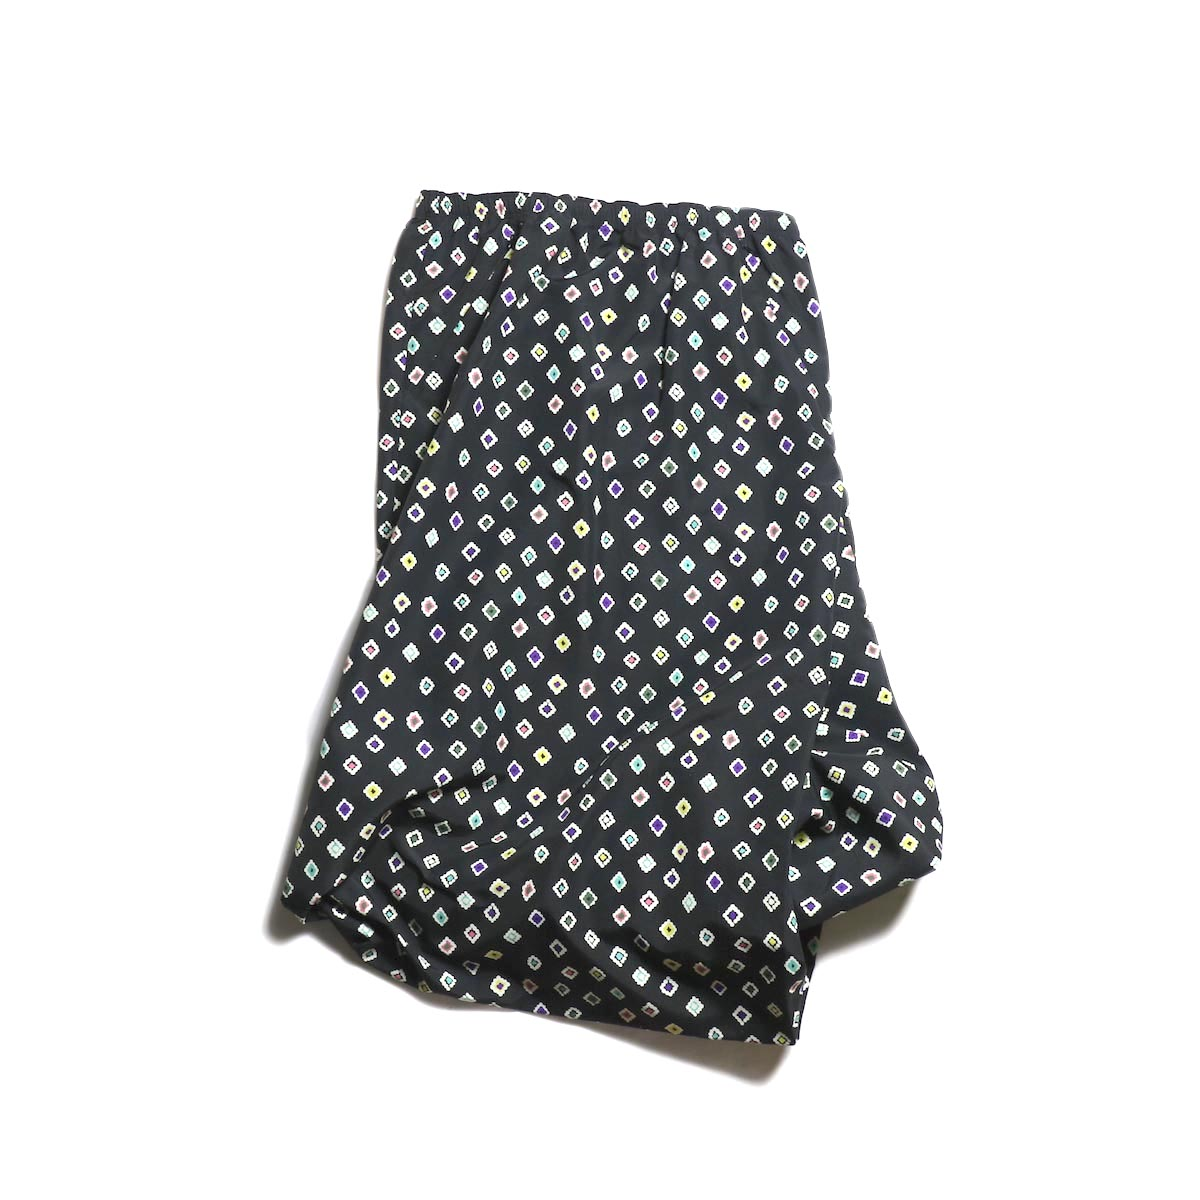 Needles(Ladie's) / Conti Skirt -Nylon Tussore/Print (Black)